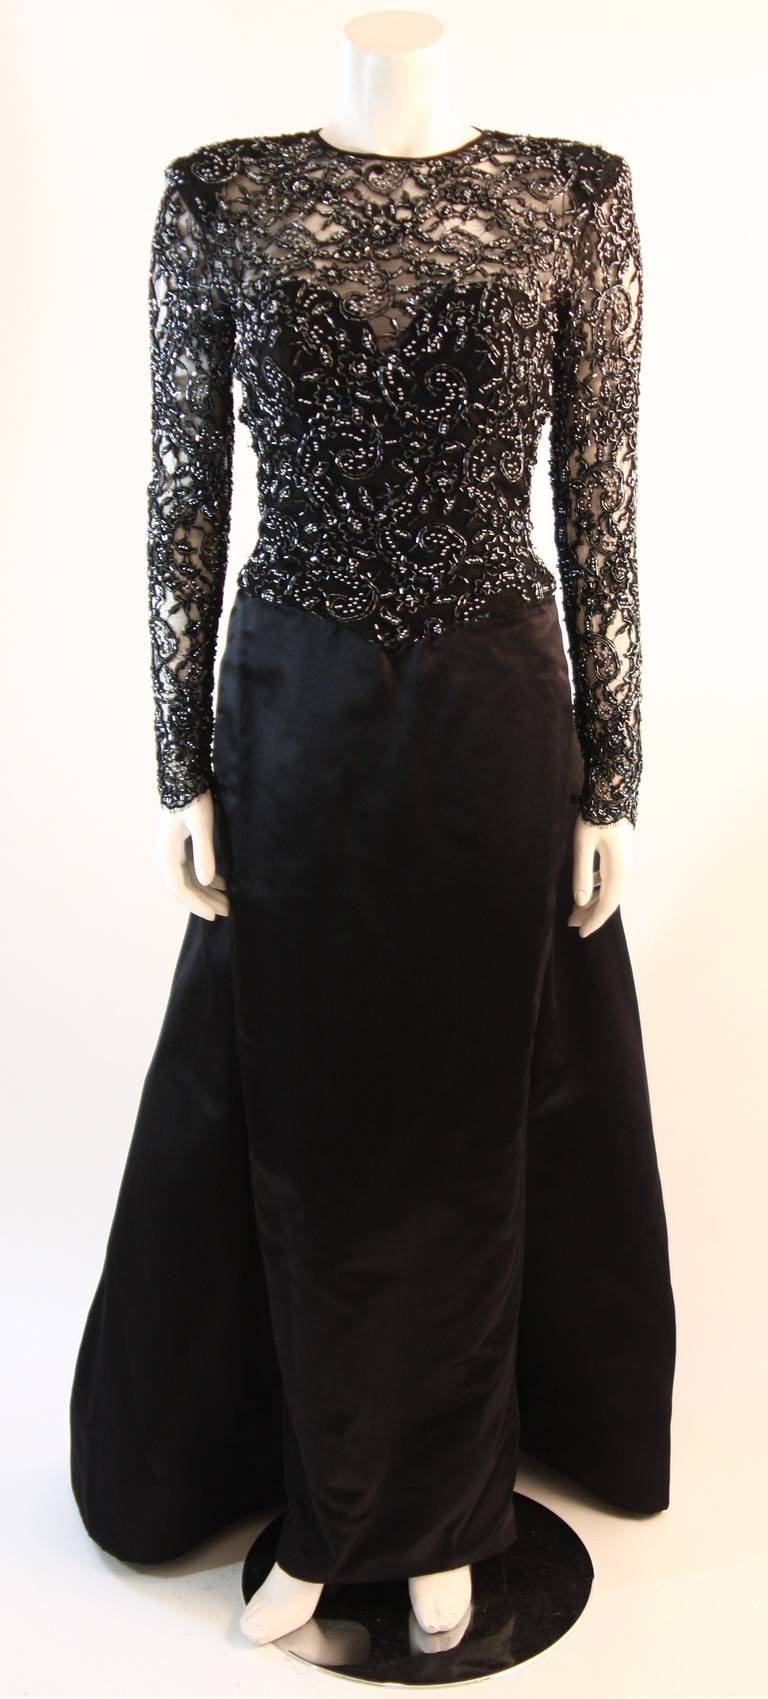 Vicky Tiel Embellished Lace Gown Size 38 2